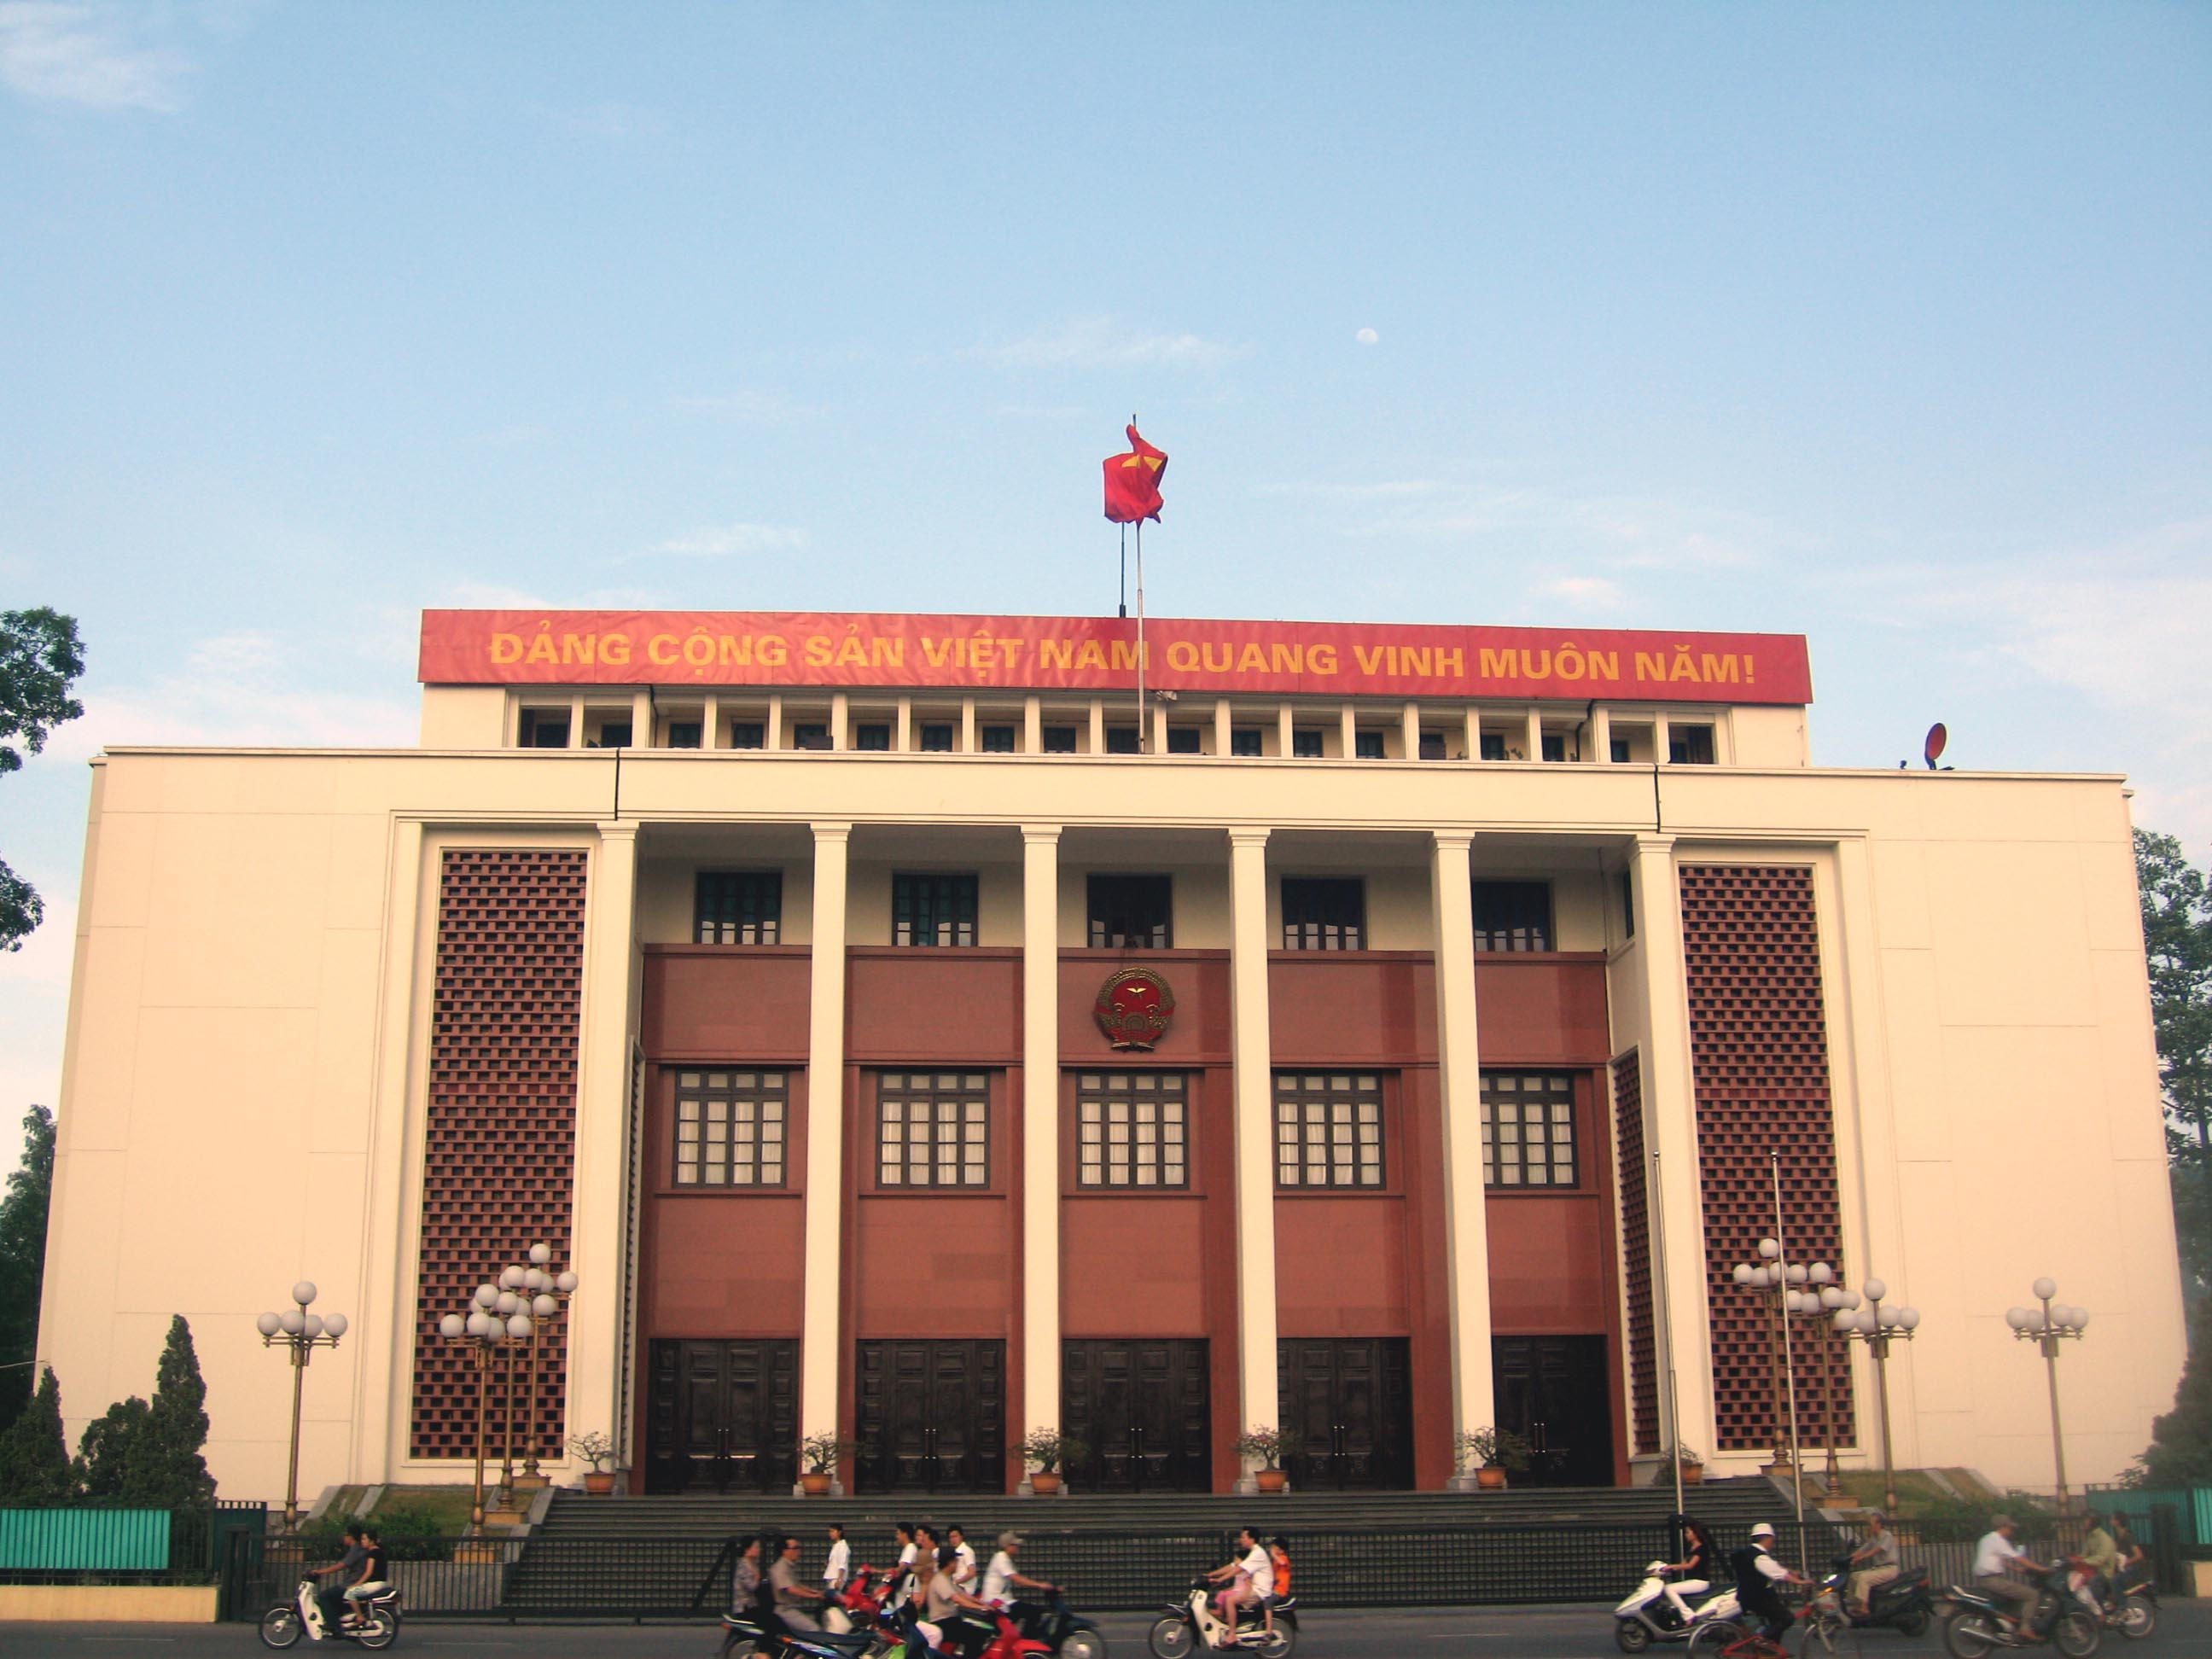 The banner above the National Assembly building in Hanoi, Vietnam reads